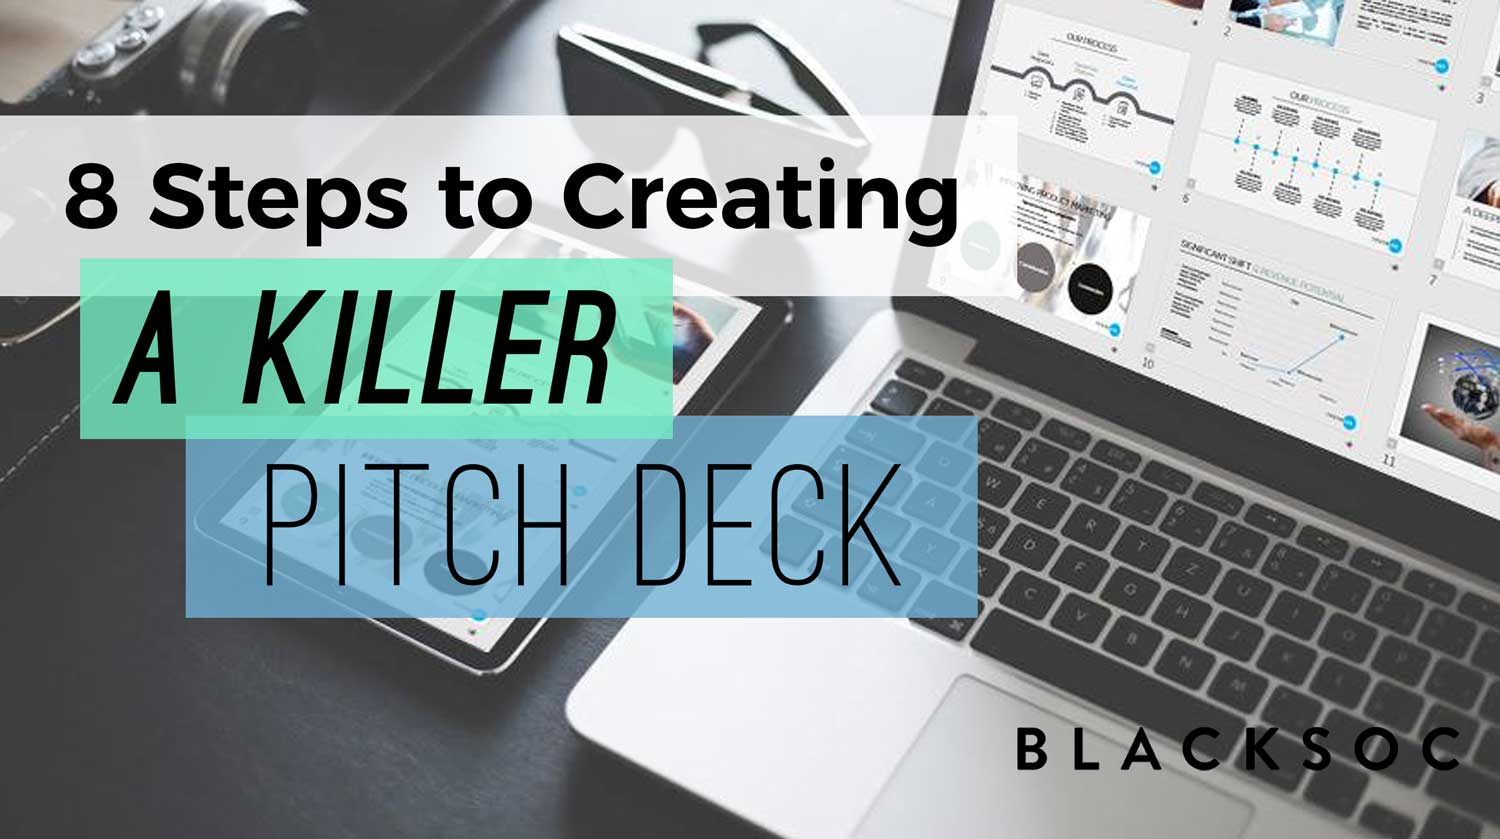 8 Steps To Creating A Killer Pitch Deck - BLACKSOC